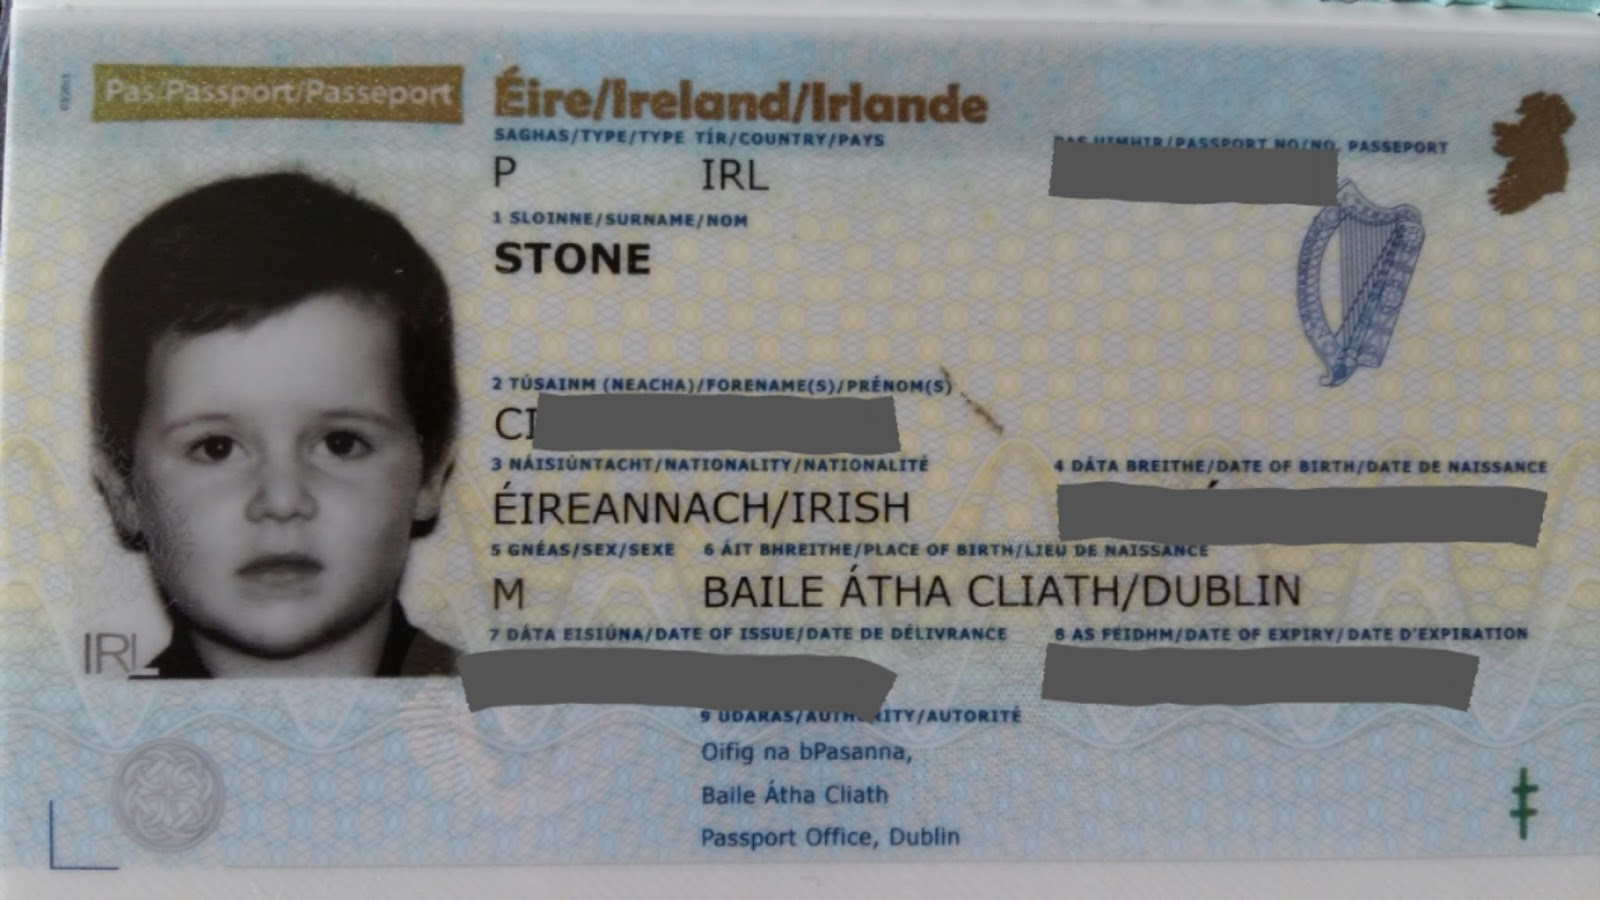 Cherrysue doin the do how to get babys first passport in cherrysue doin the do how to get babys first passport in ireland the definitive guide falaconquin